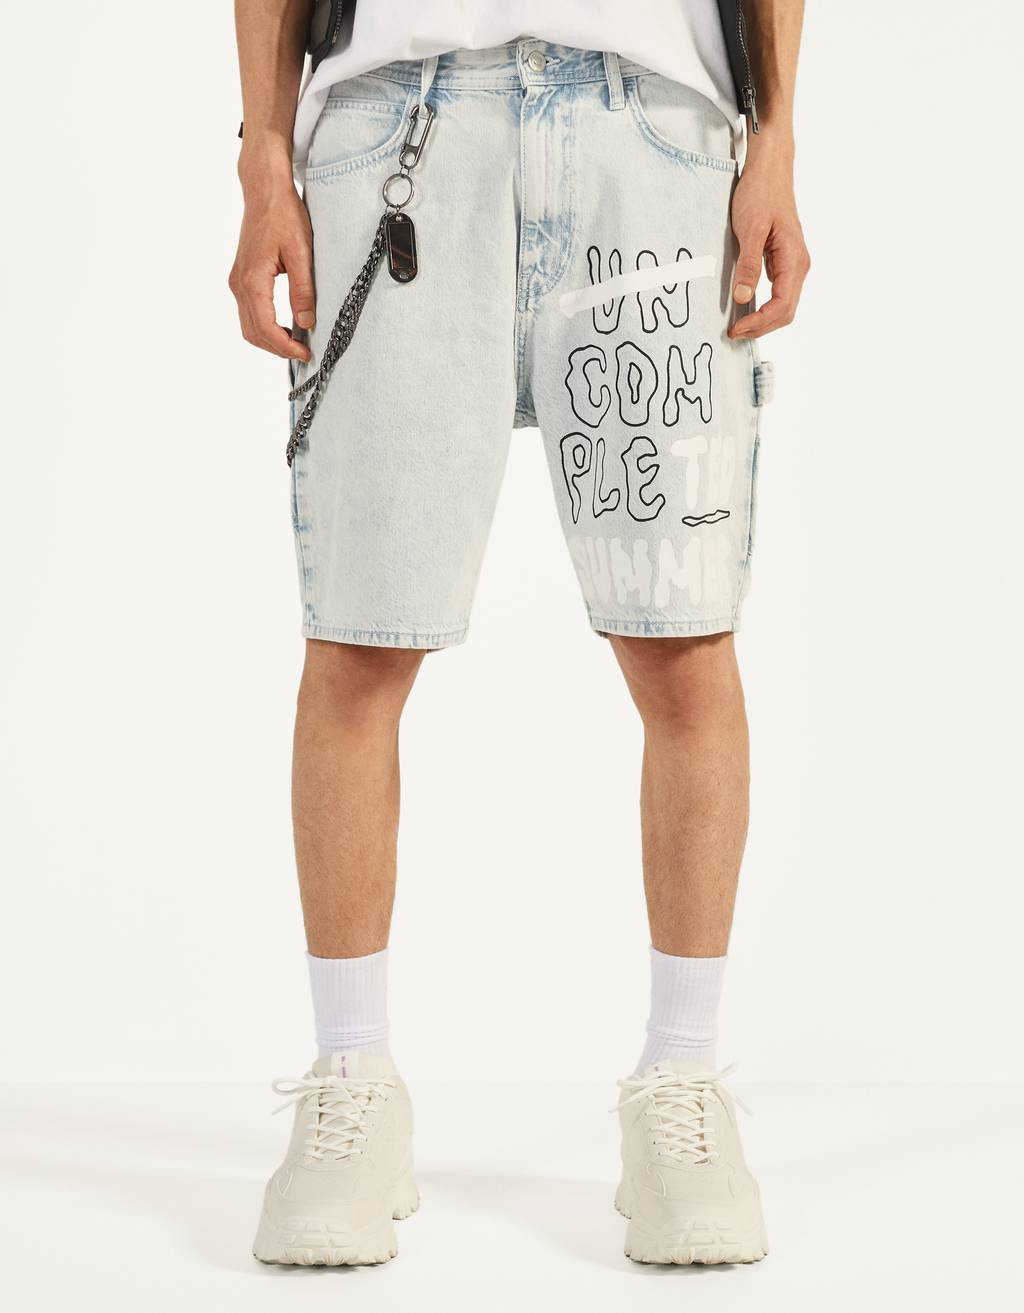 UV React denim Bermuda shorts